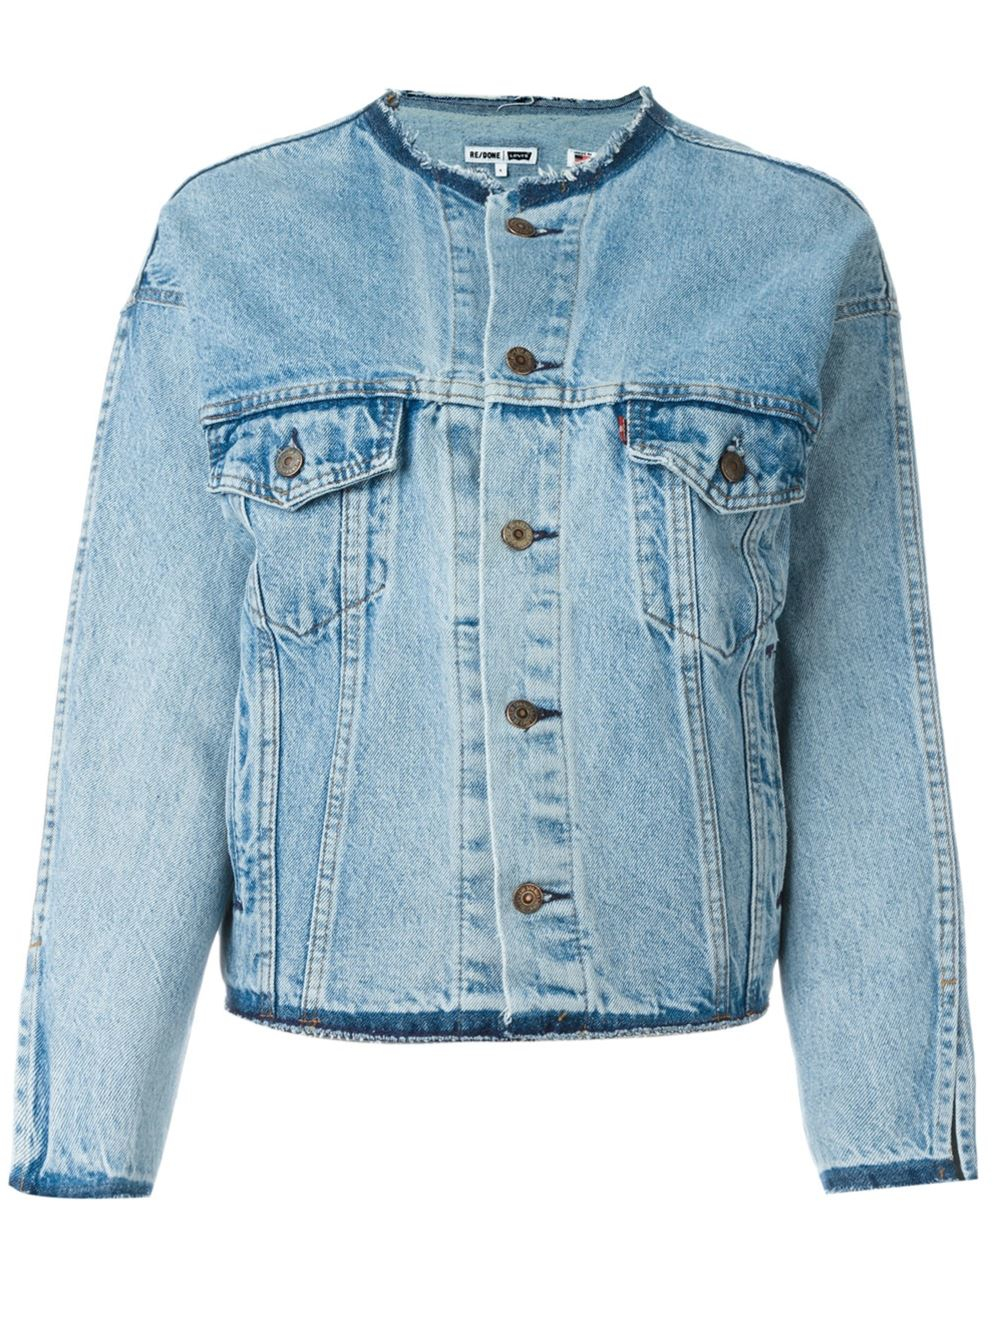 You searched for: 80s jean jacket! Etsy is the home to thousands of handmade, vintage, and one-of-a-kind products and gifts related to your search. No matter what you're looking for or where you are in the world, our global marketplace of sellers can help you find unique and affordable options. Let's get started!